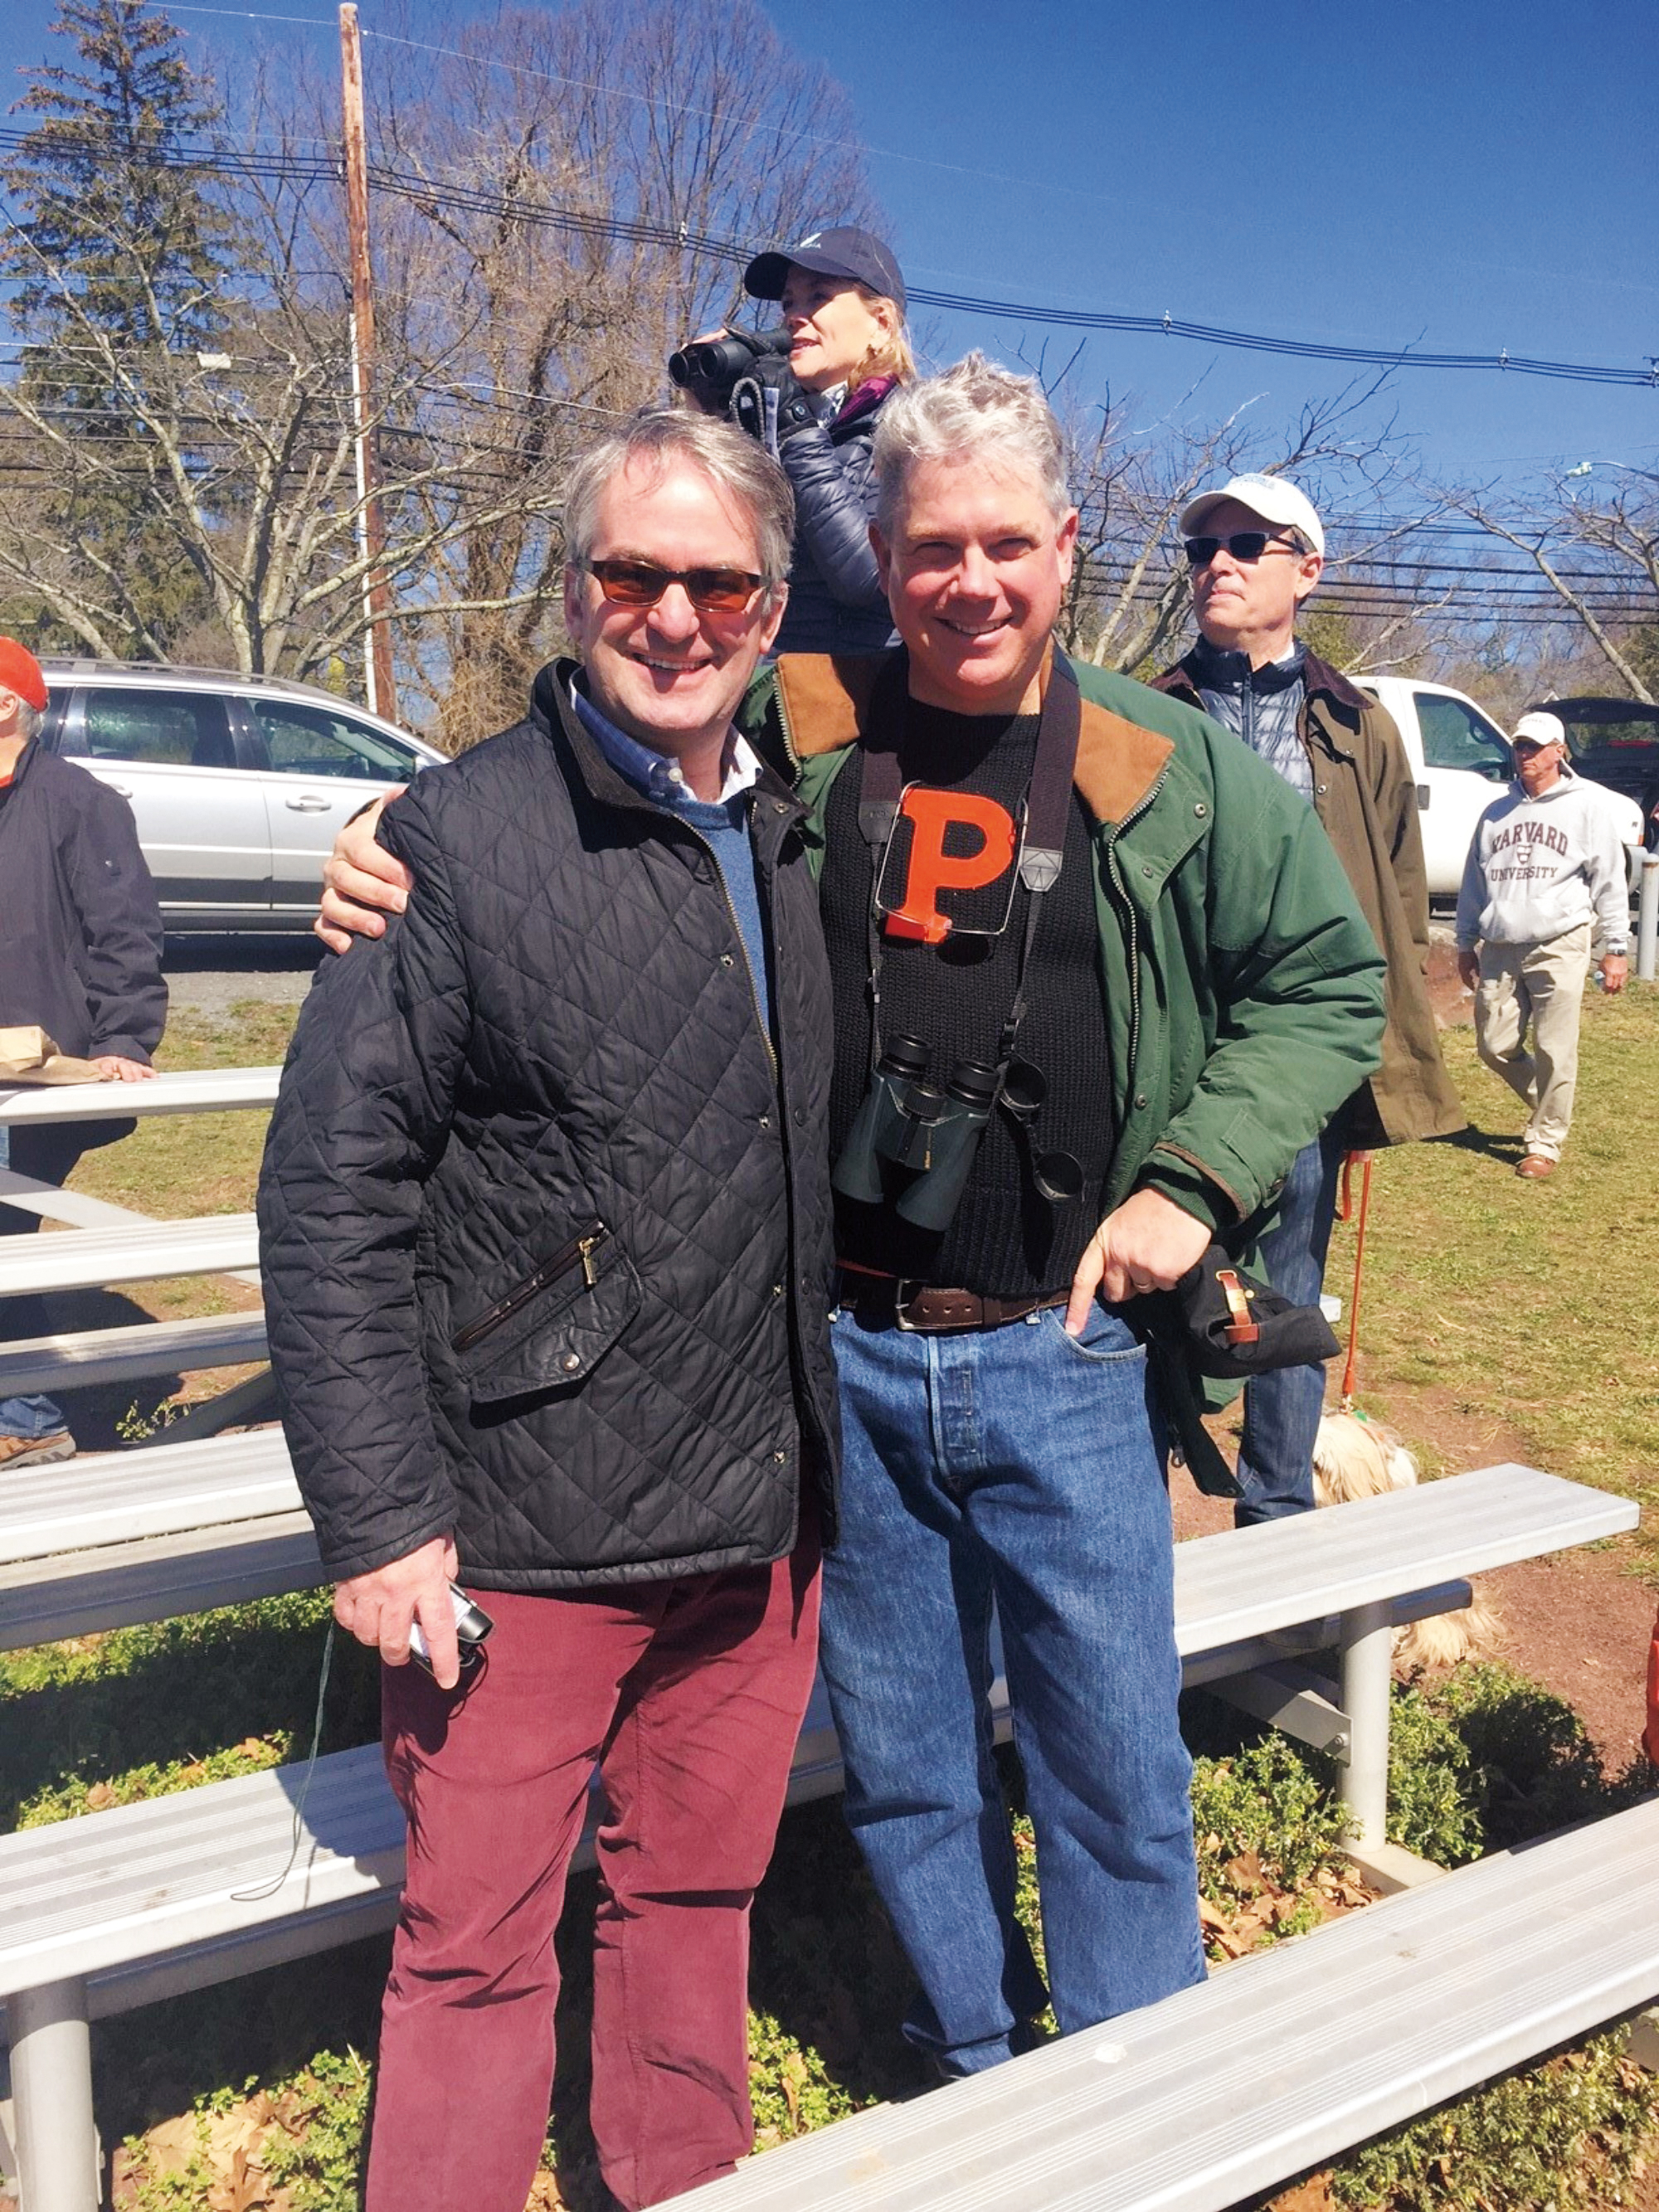 Carl Weatherley-White '81 (l.) and Peter Paine '81 at a Princeton v. Dartmouth crew race.